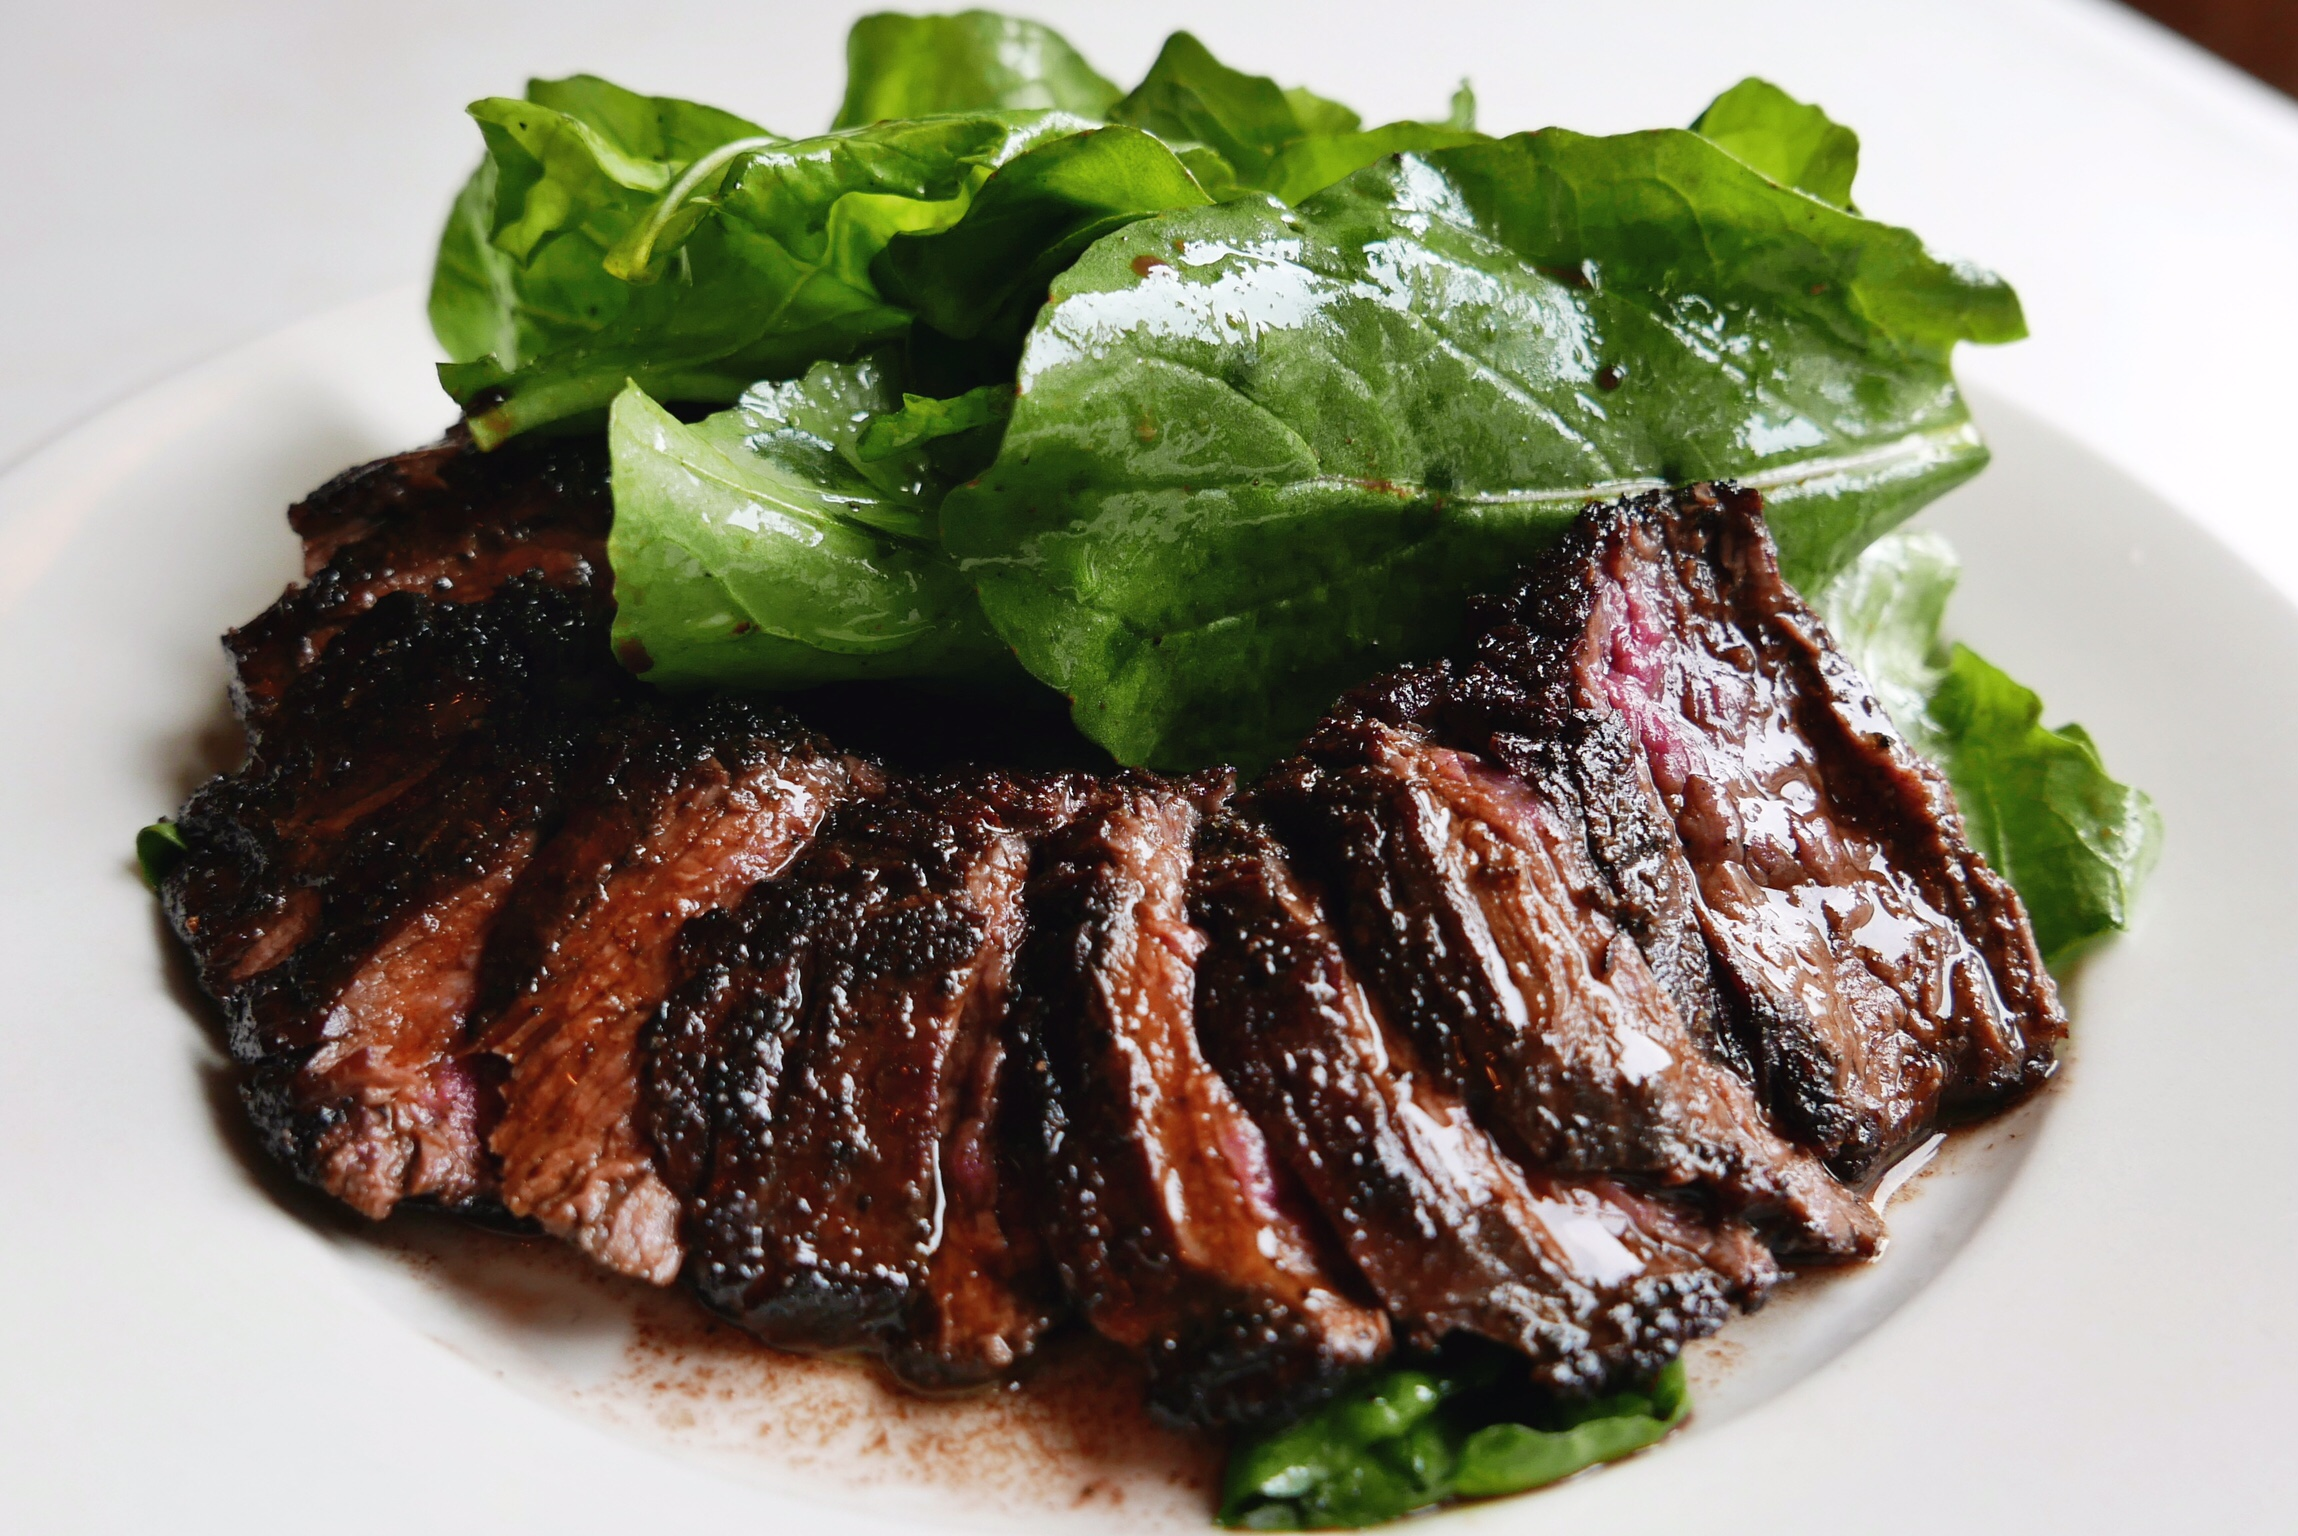 Tagliata Toscana Seared Skirt Steak